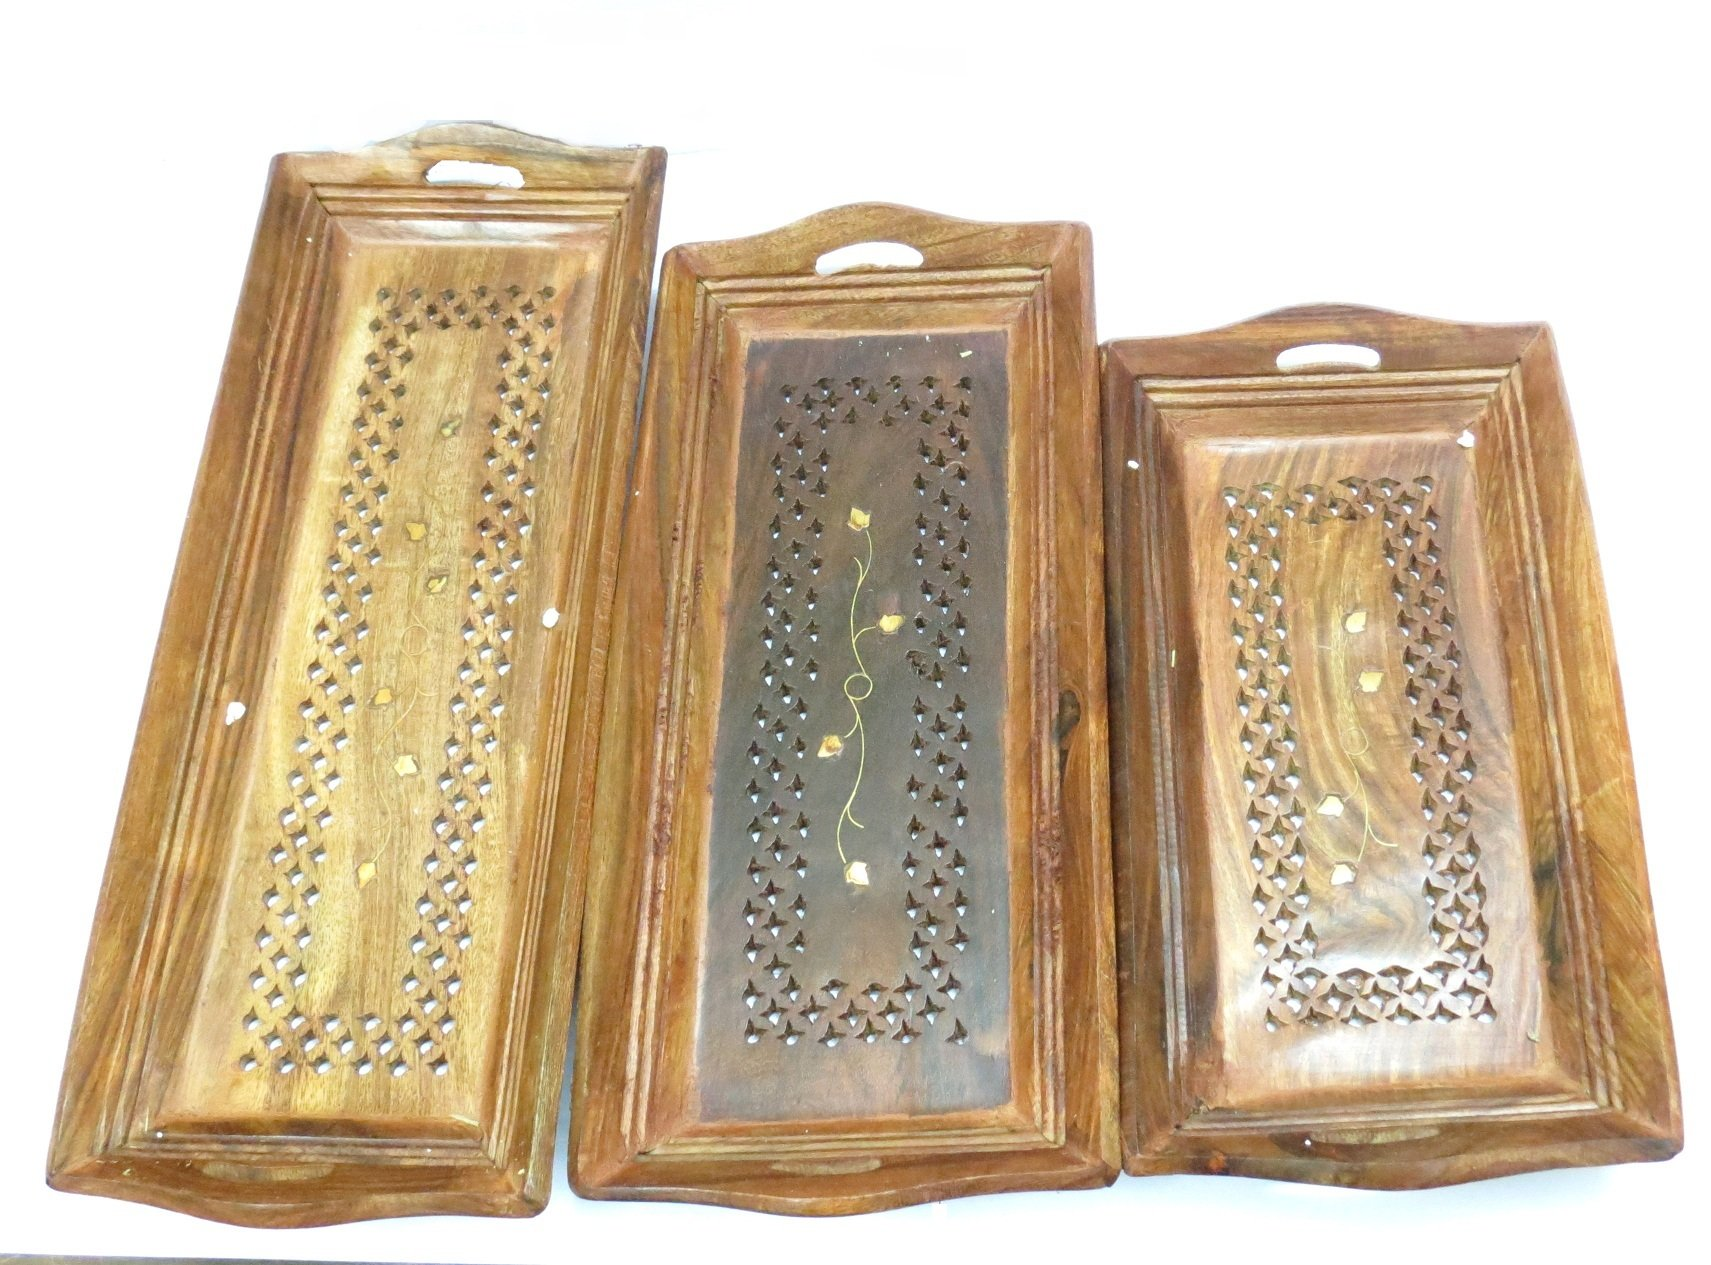 Wooden Serving Tray Handmade Home Kitchen Decor, (Set of 3)- with Brass Etchings For Parties,Gift for Christmas or Birthday to Your Loved Ones By Affaires W-40139